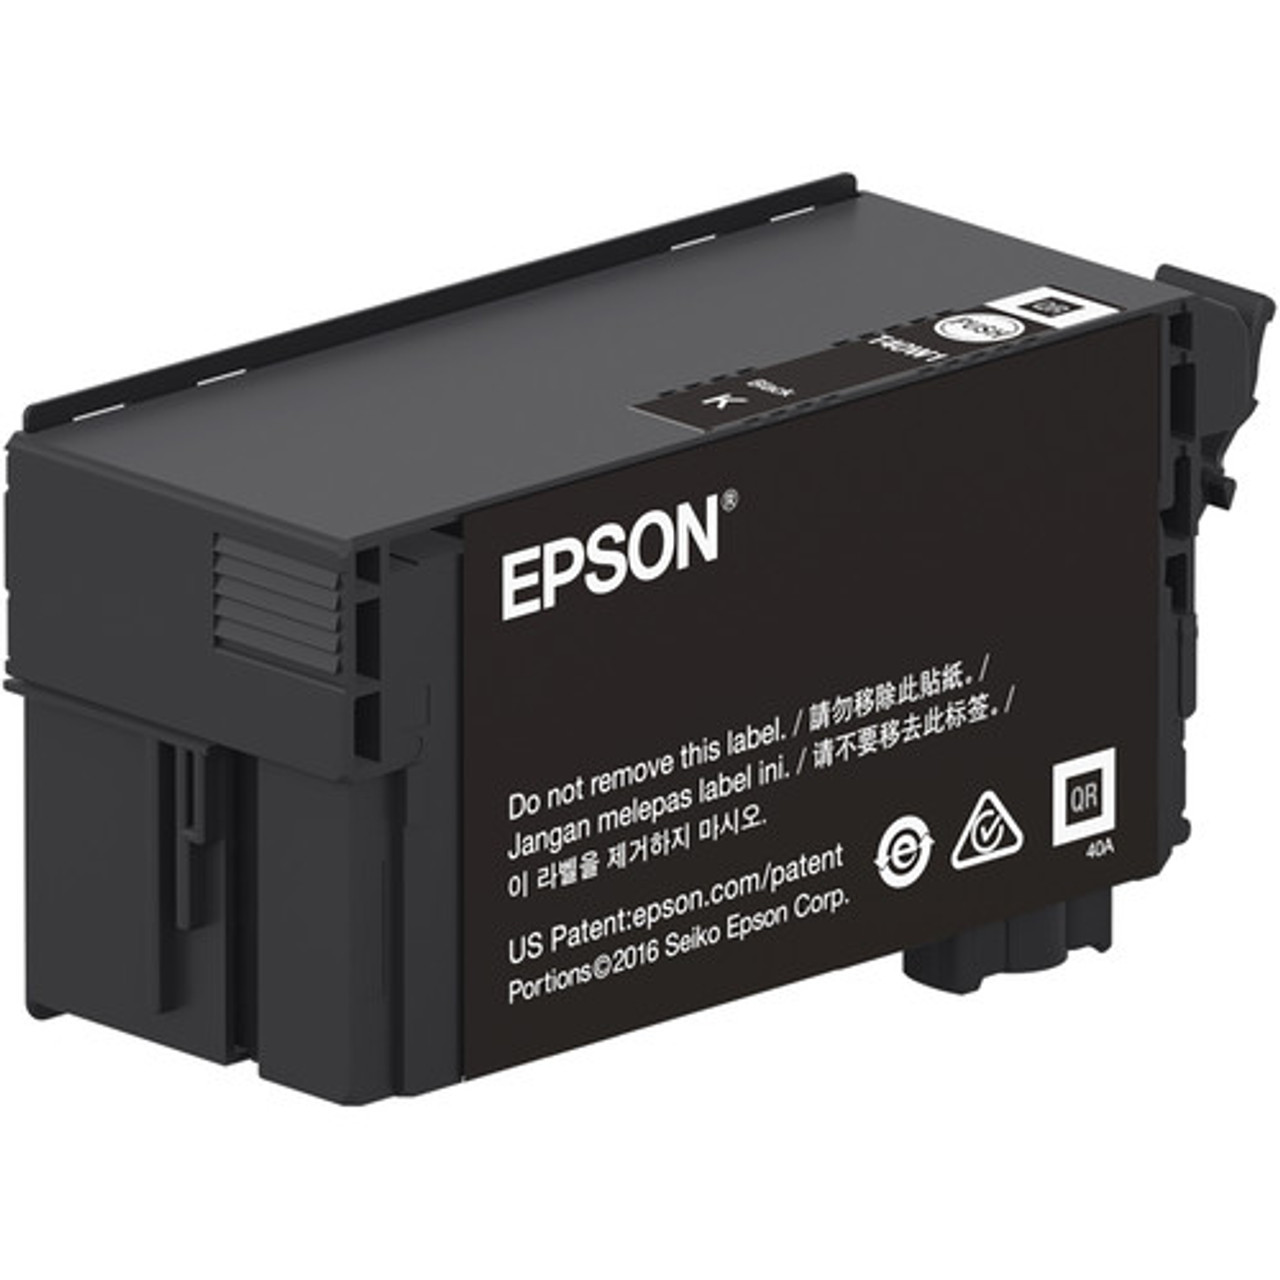 Epson T40W Black High-Capacity Ink Cartridge (80mL)